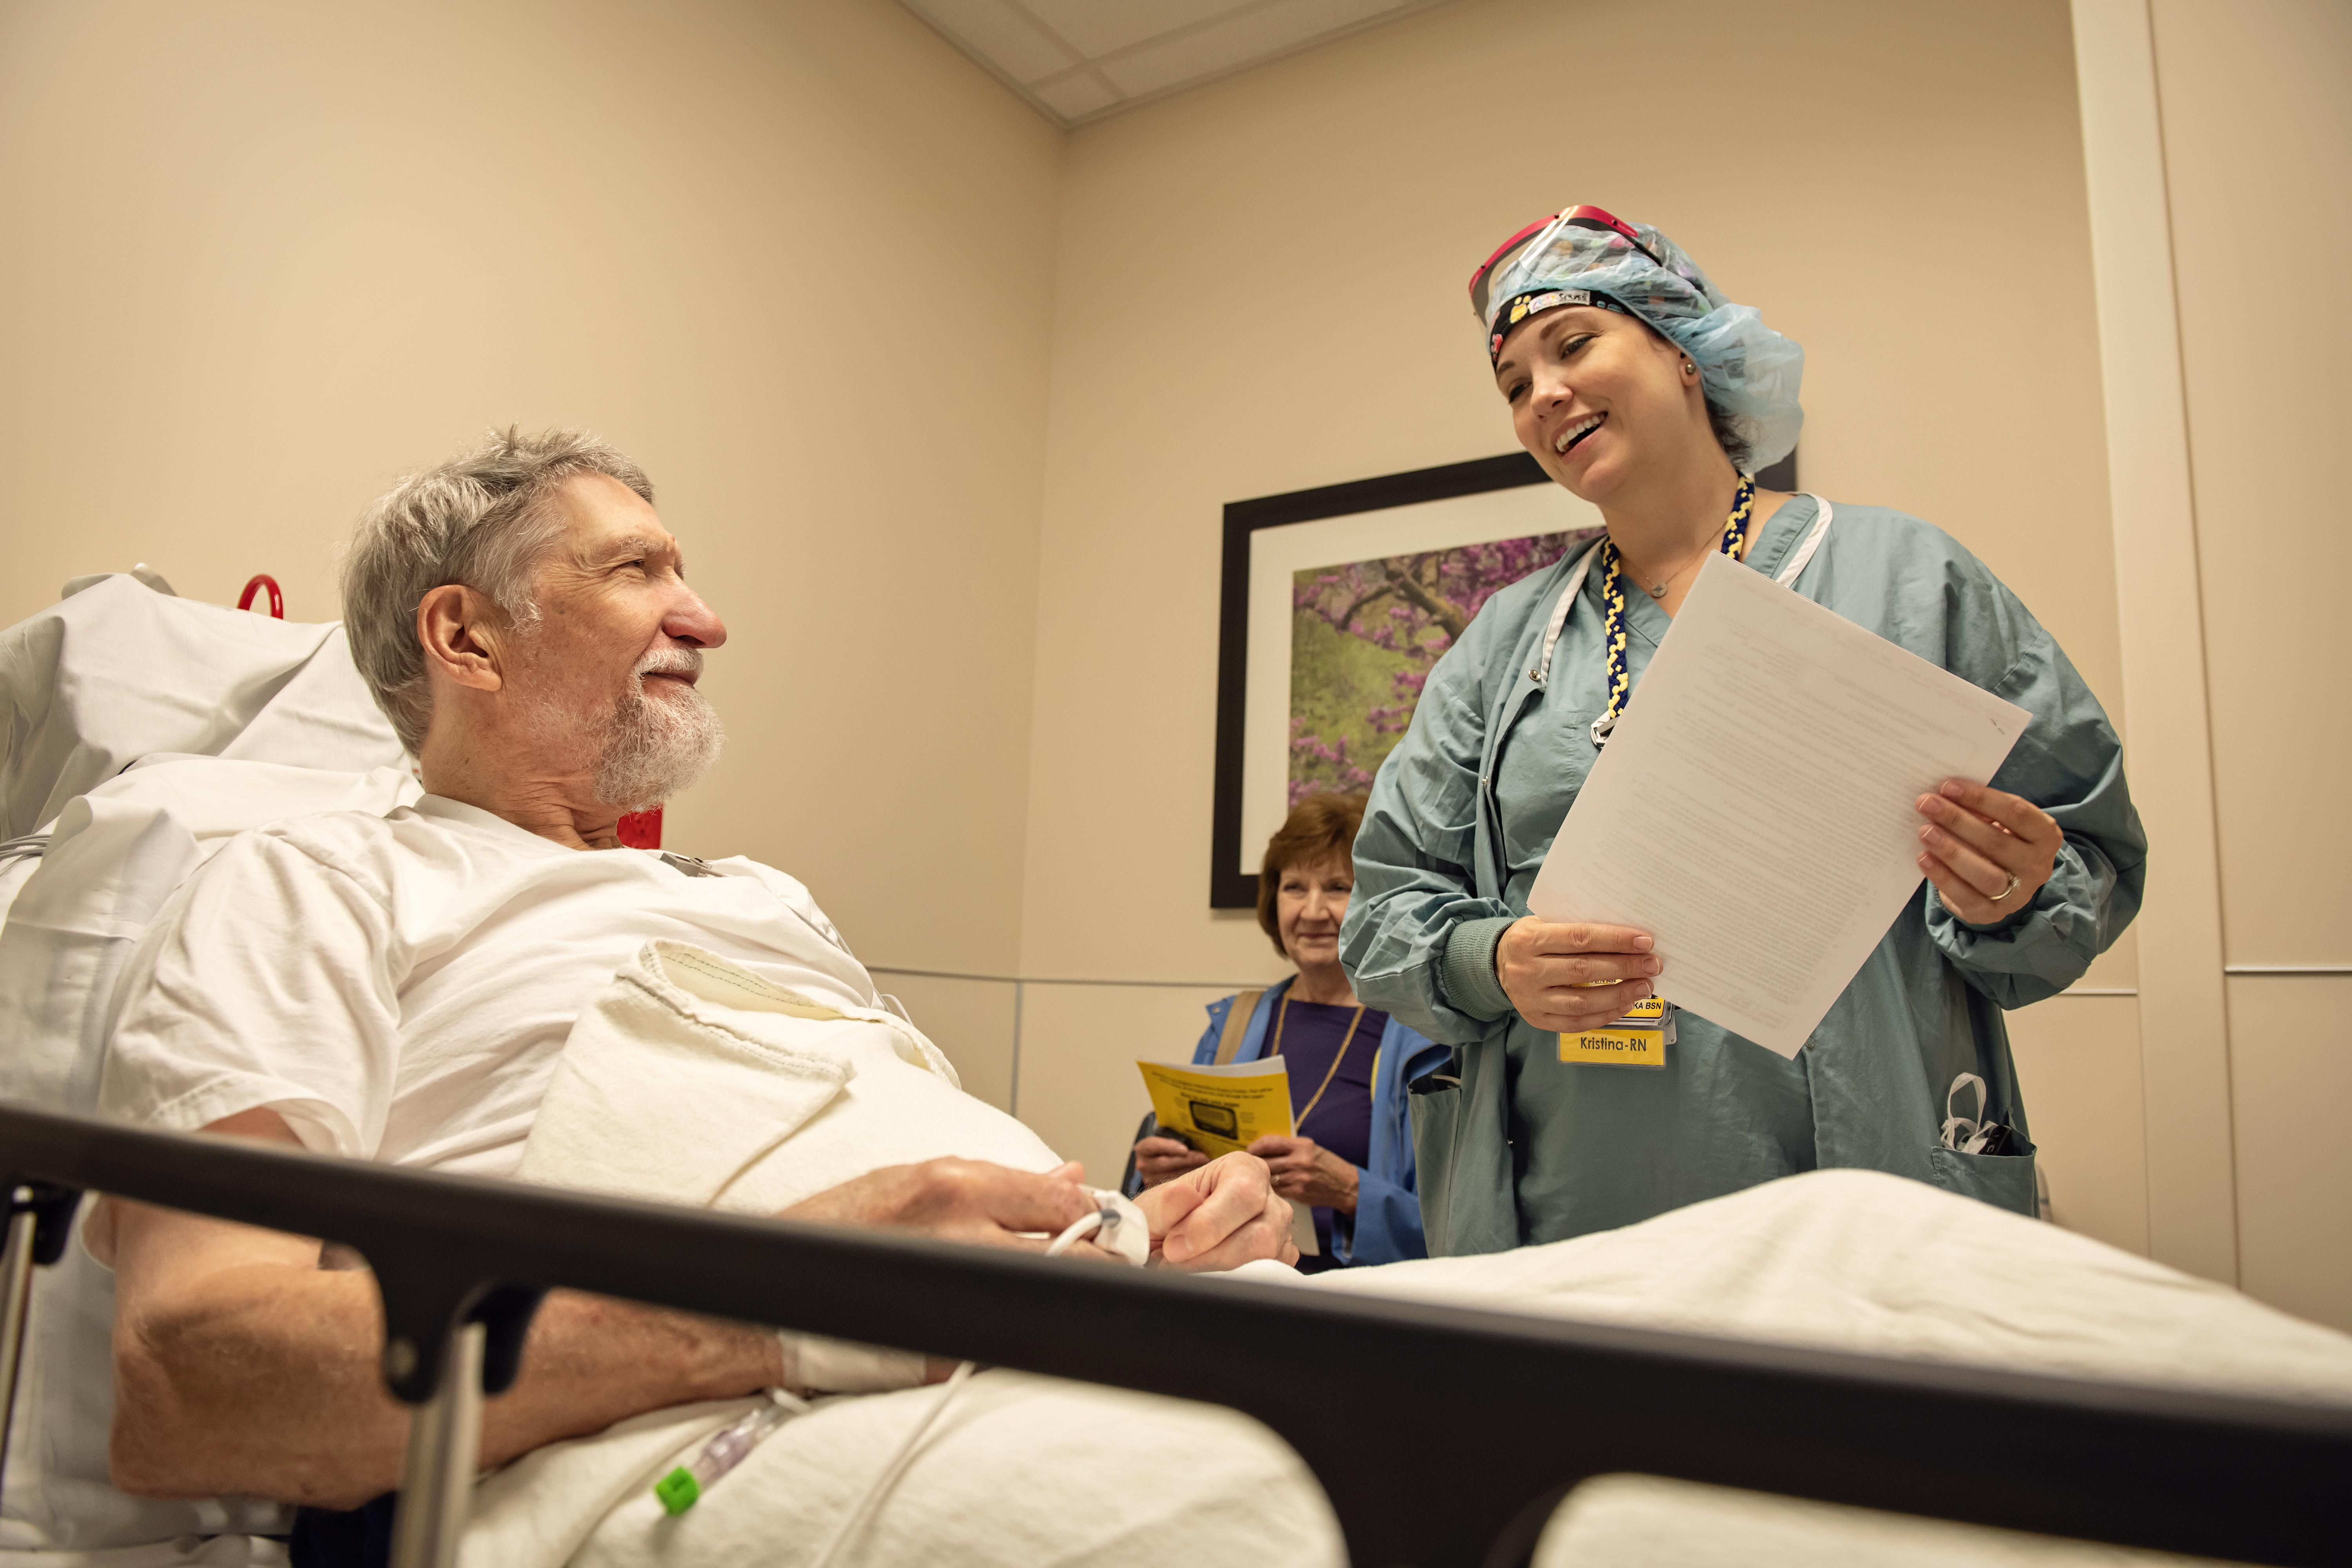 Man laying on hospital bed talking to nurse